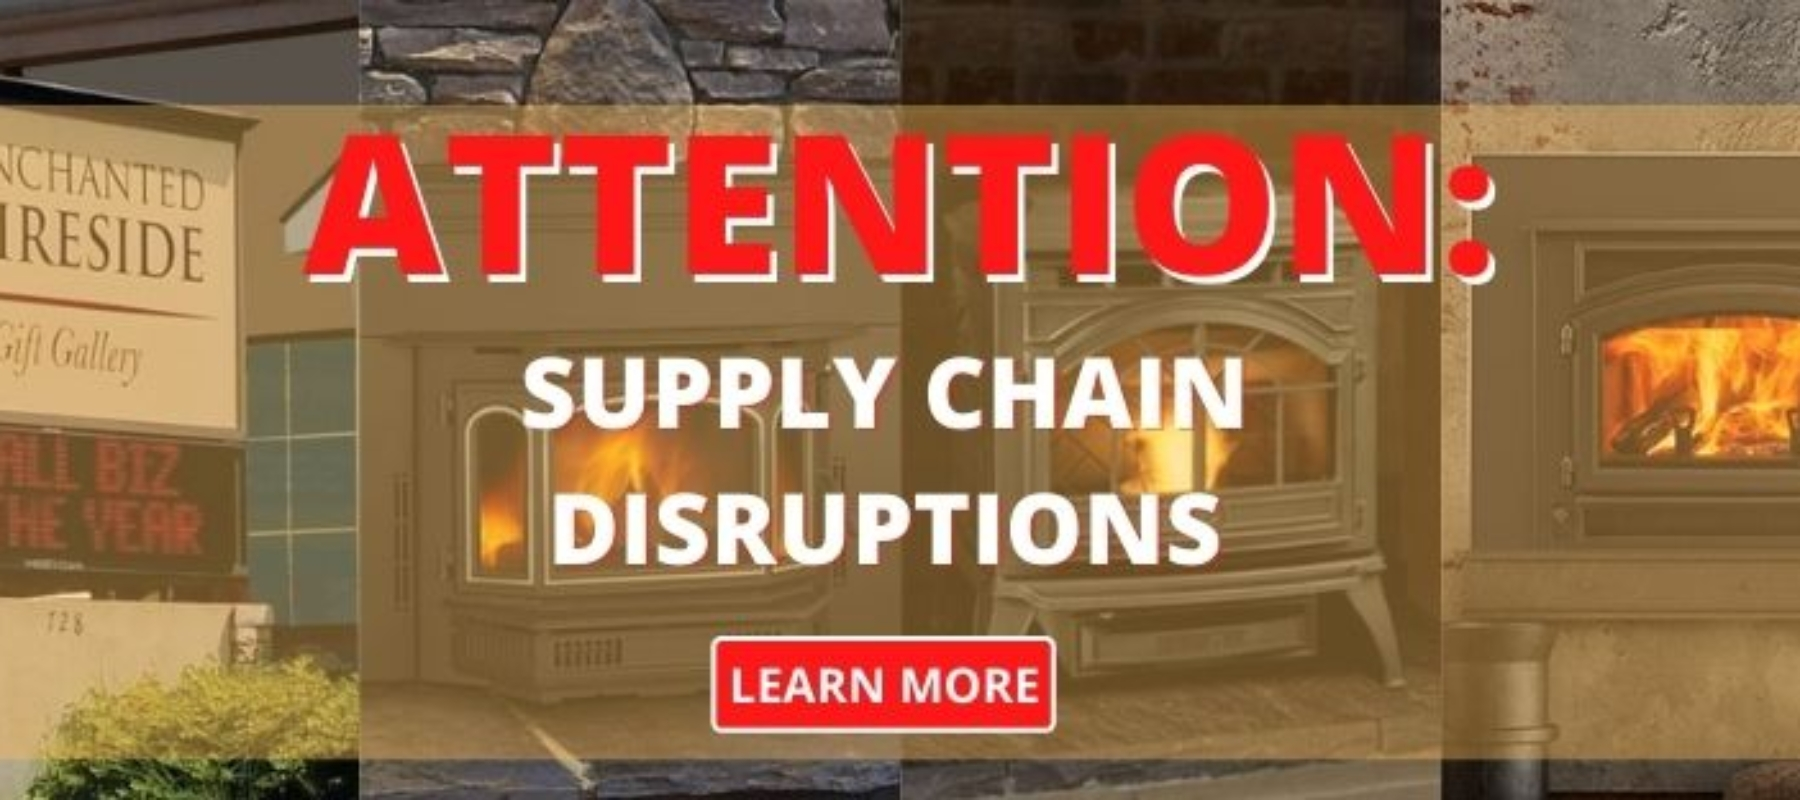 Now is the best time to start your home improvement due to supply chain disruptions.